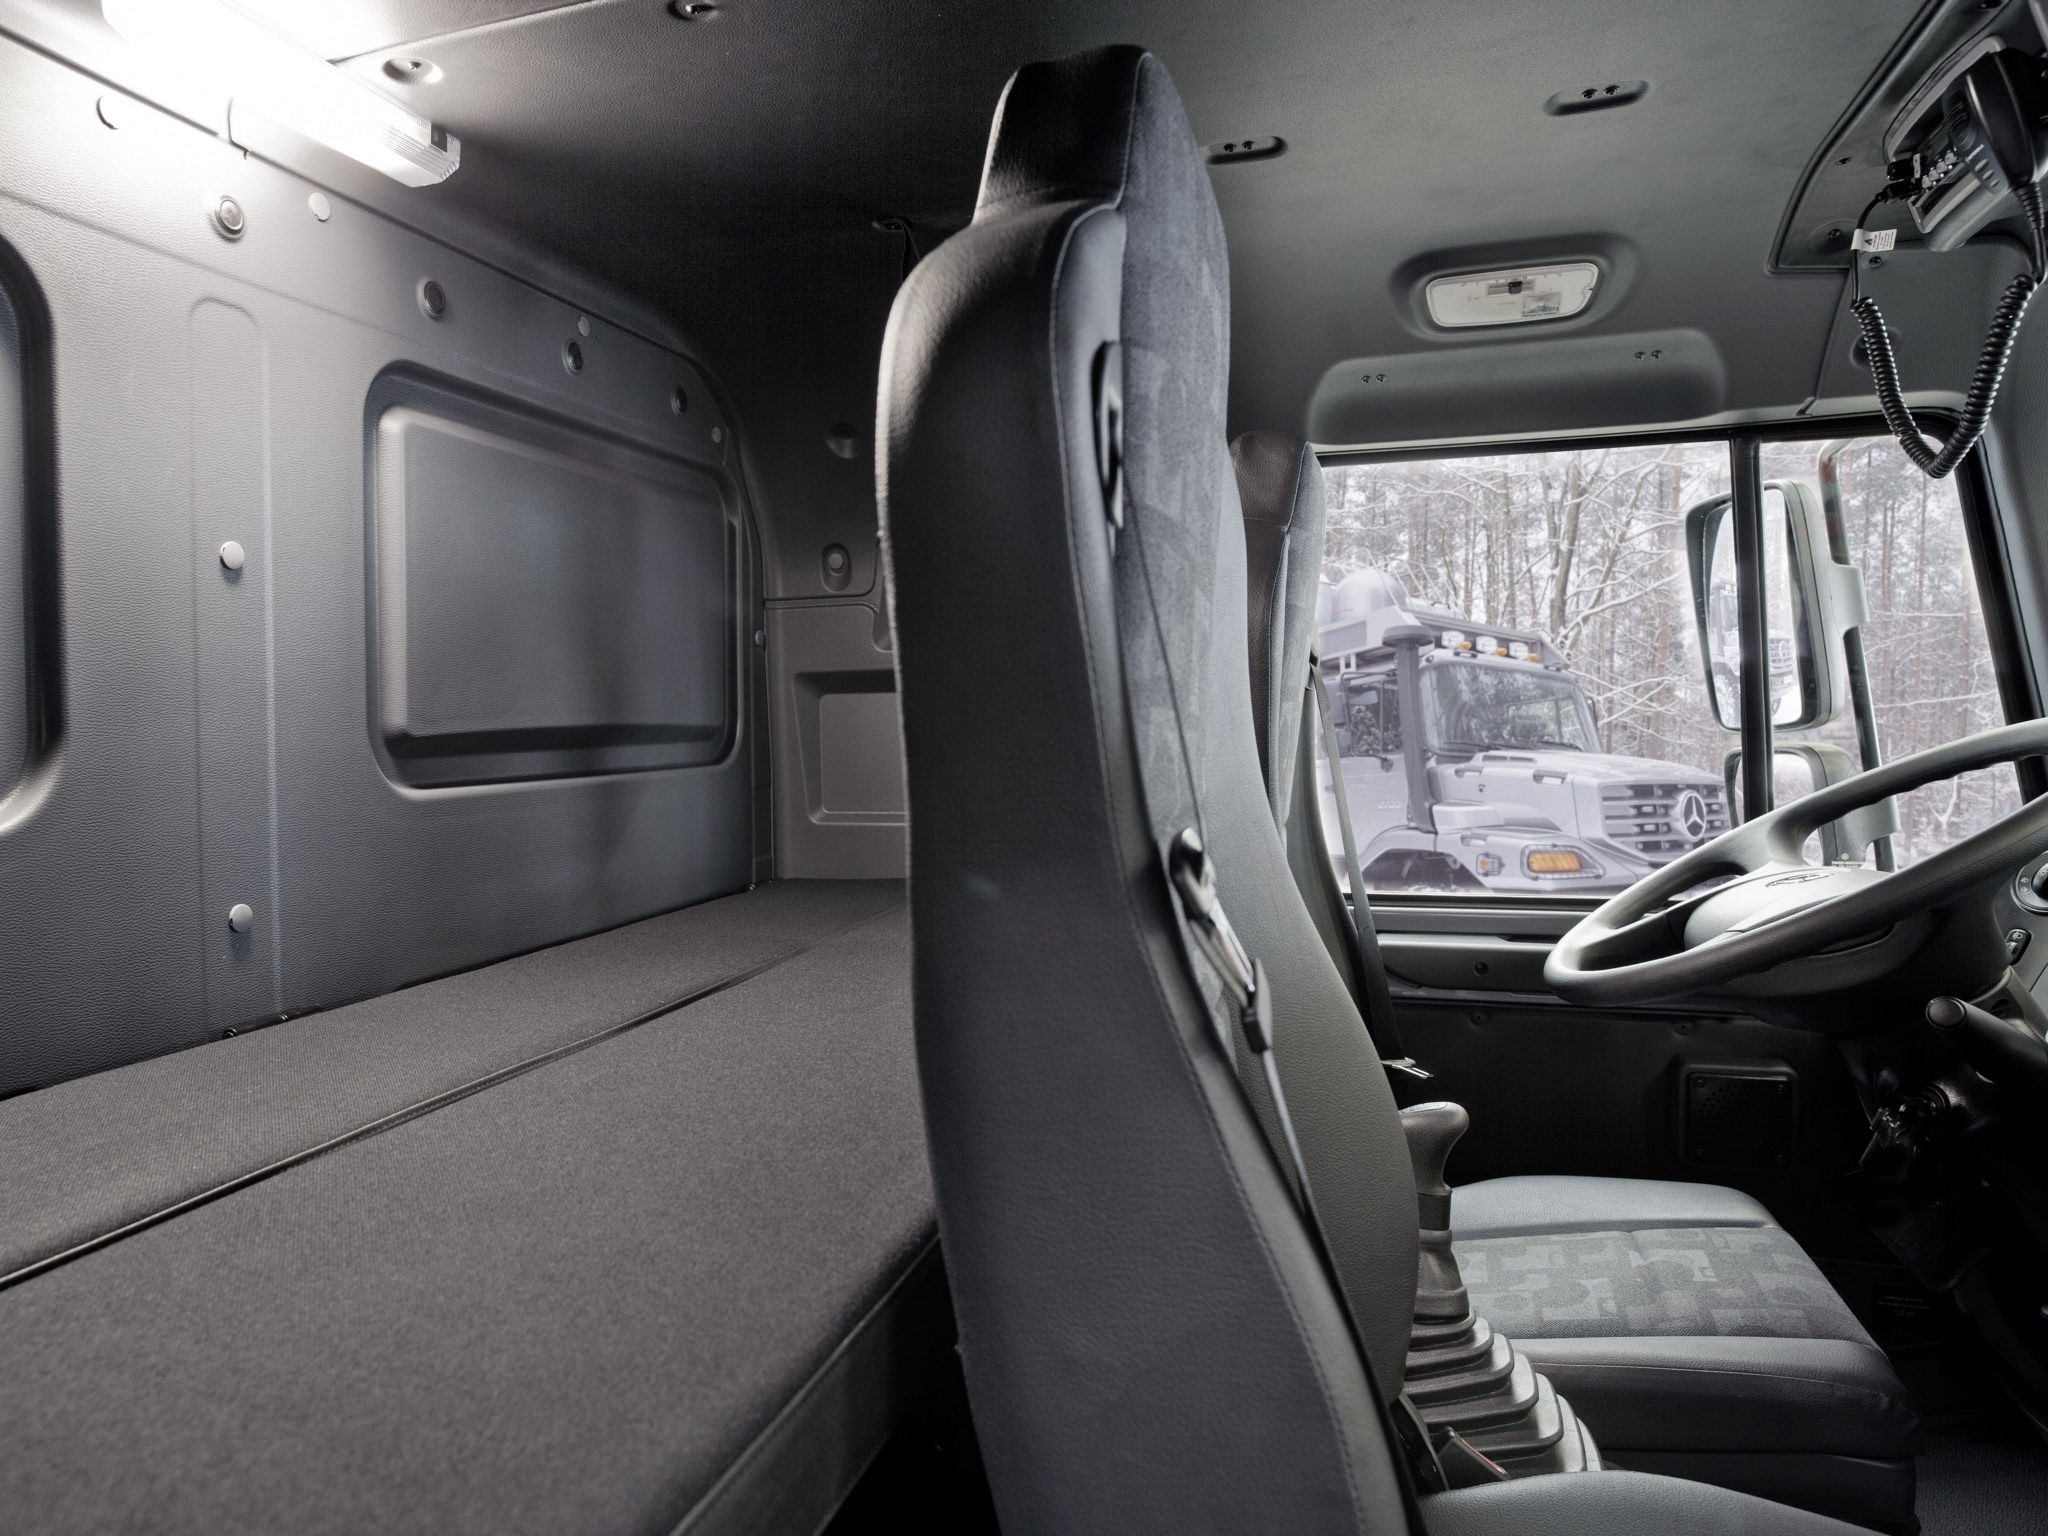 2011 Mercedes Benz Zetros 2733a Expedition Vehicle 6x6 Offroad Motorhome Camper Interior G Wallpaper 2048x1536 149652 Wallpaperup